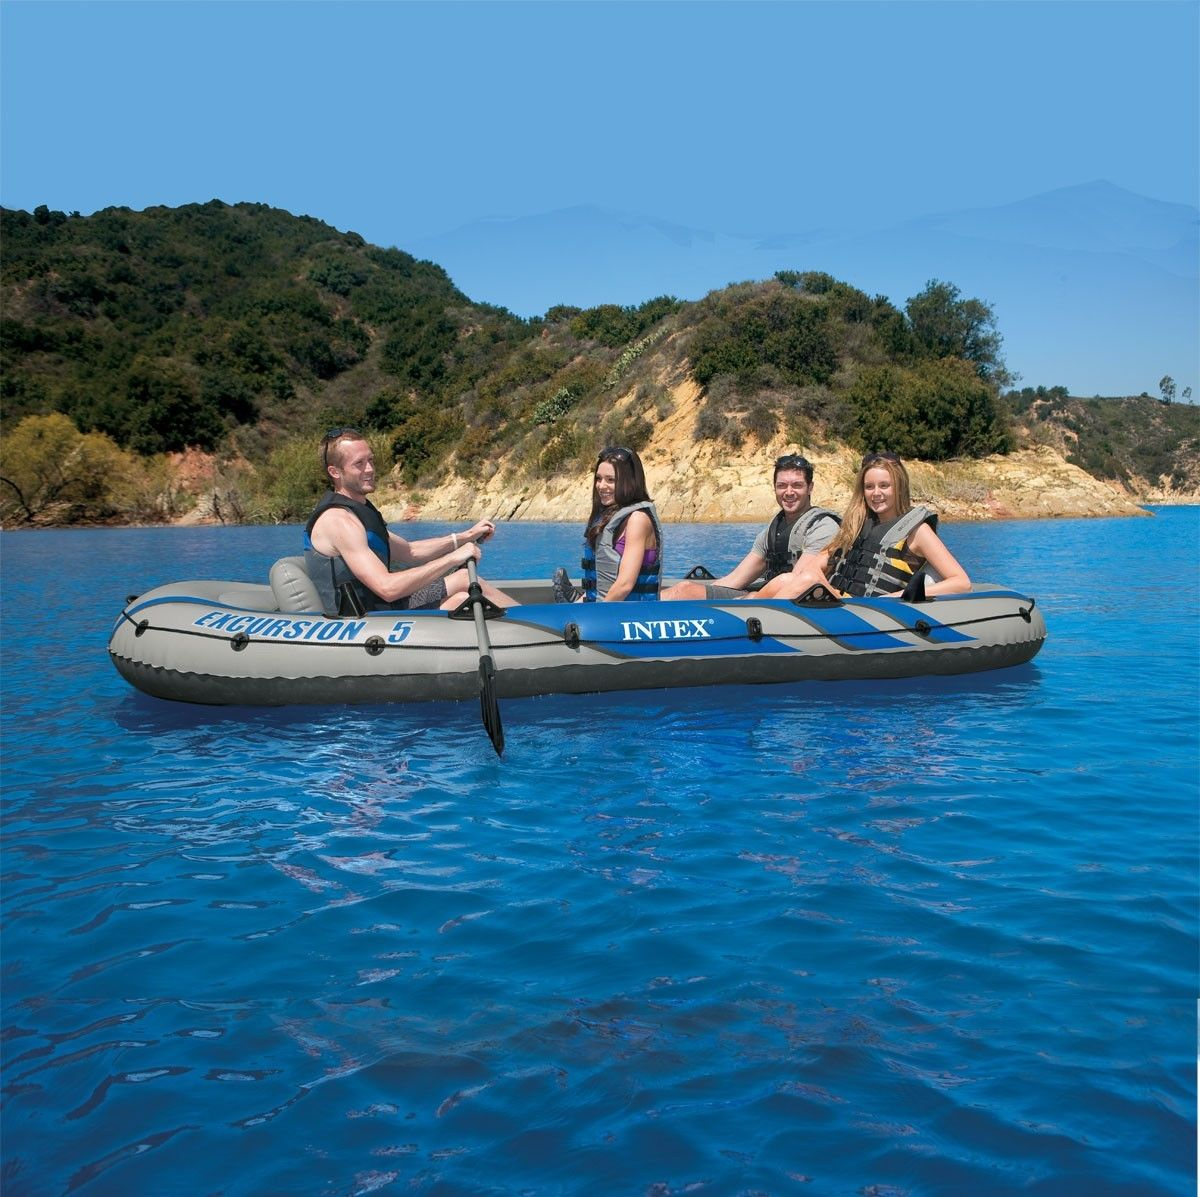 Intex Excursion 5 5 Person Inflatable Boat Set With Aluminum Oars And High O 733281566506 Ebay